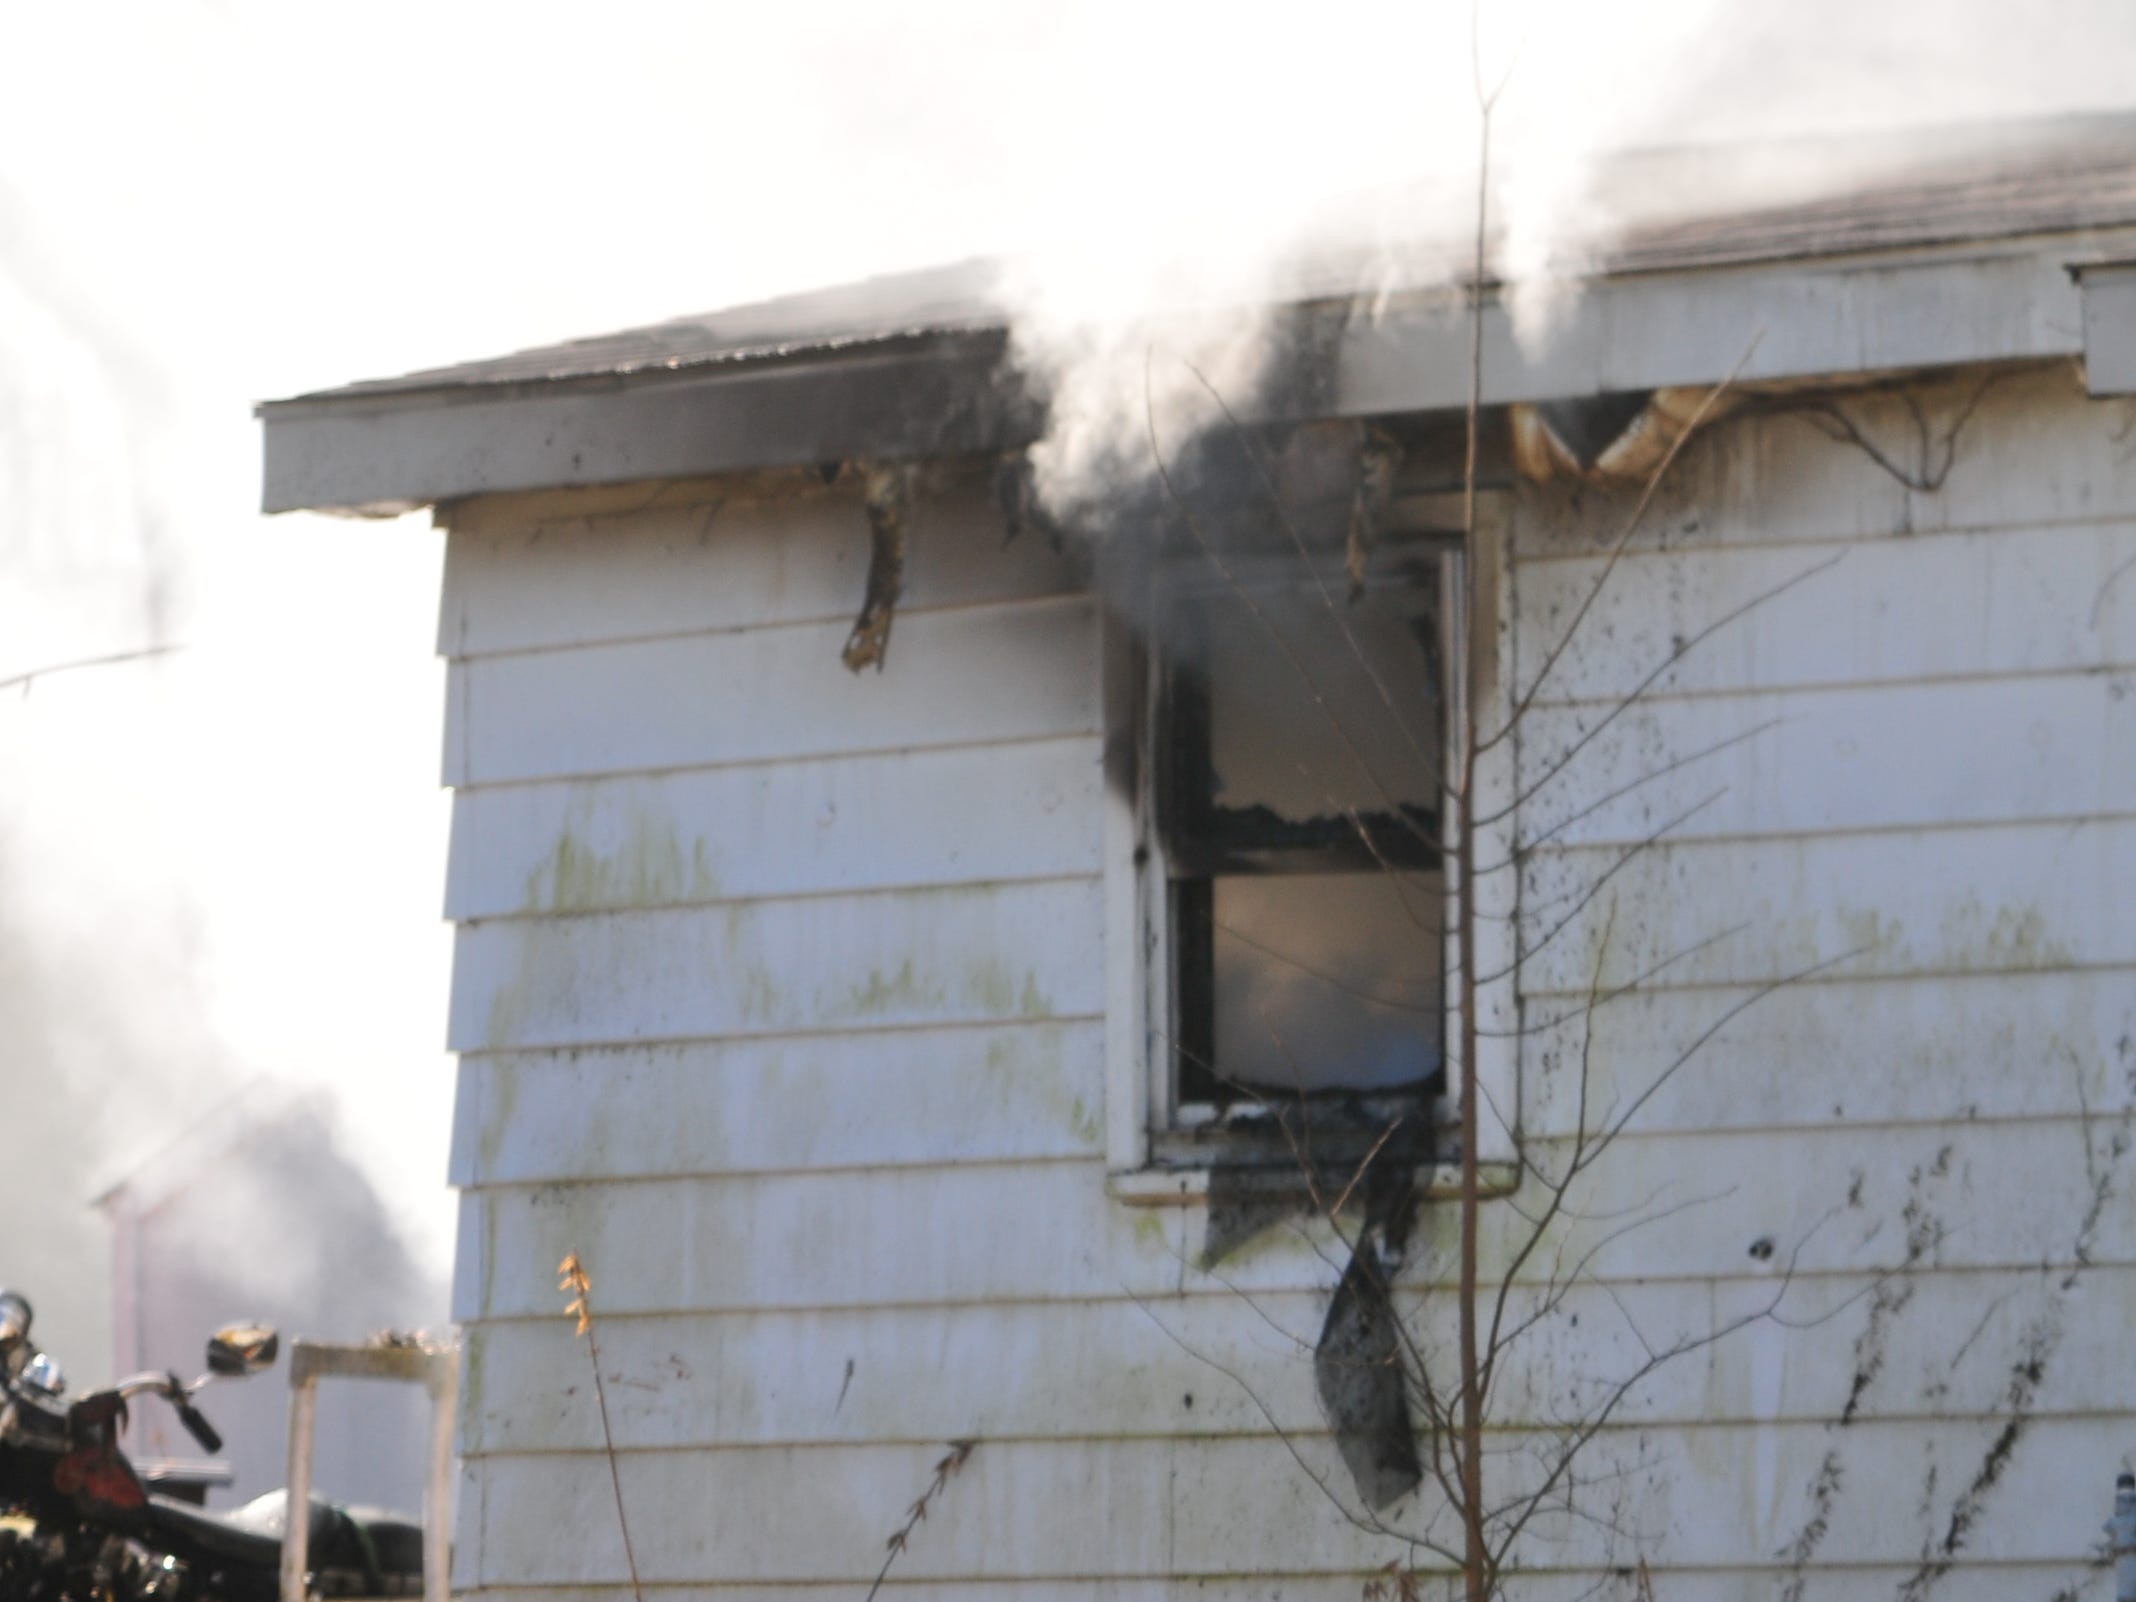 Smoke escapes through a window of a home in the 2100 block of South 11th Street.